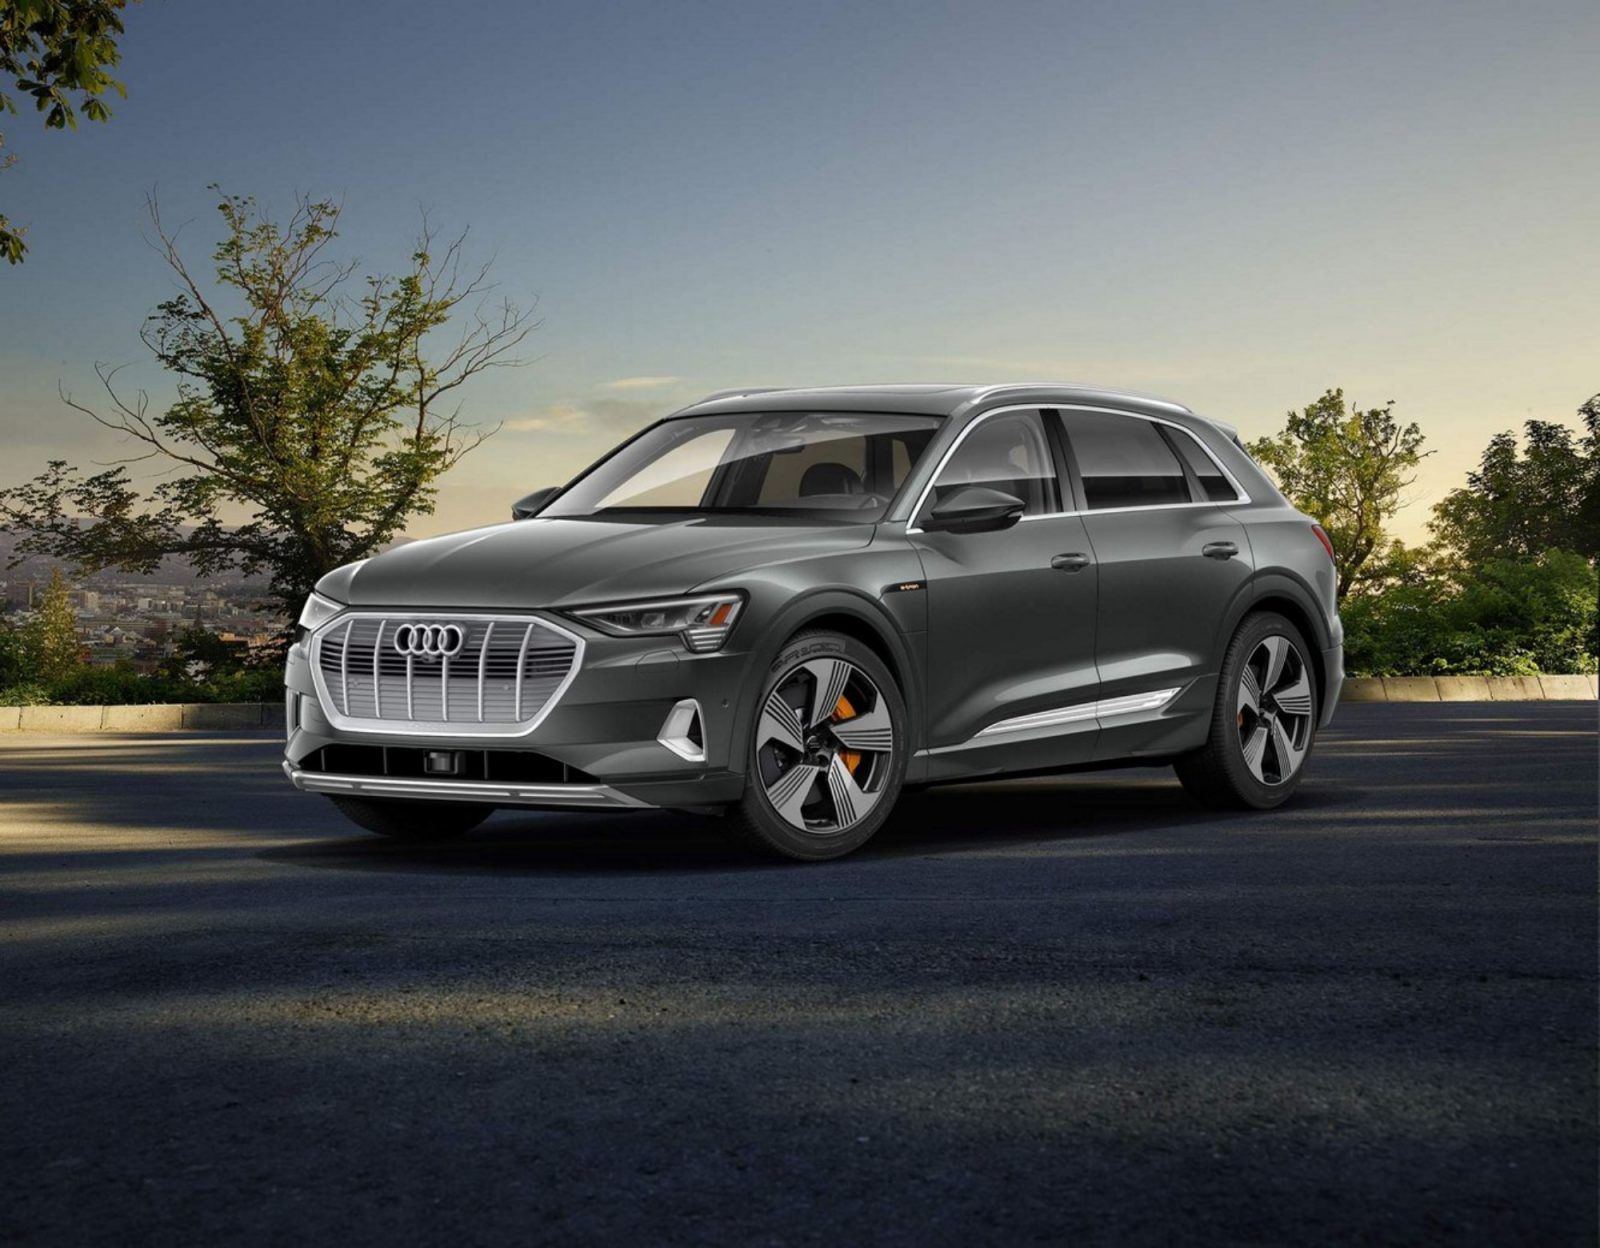 Electric Goes Audi All E Tron Suv Unveiled And Available For Us Customers To Place Reservations